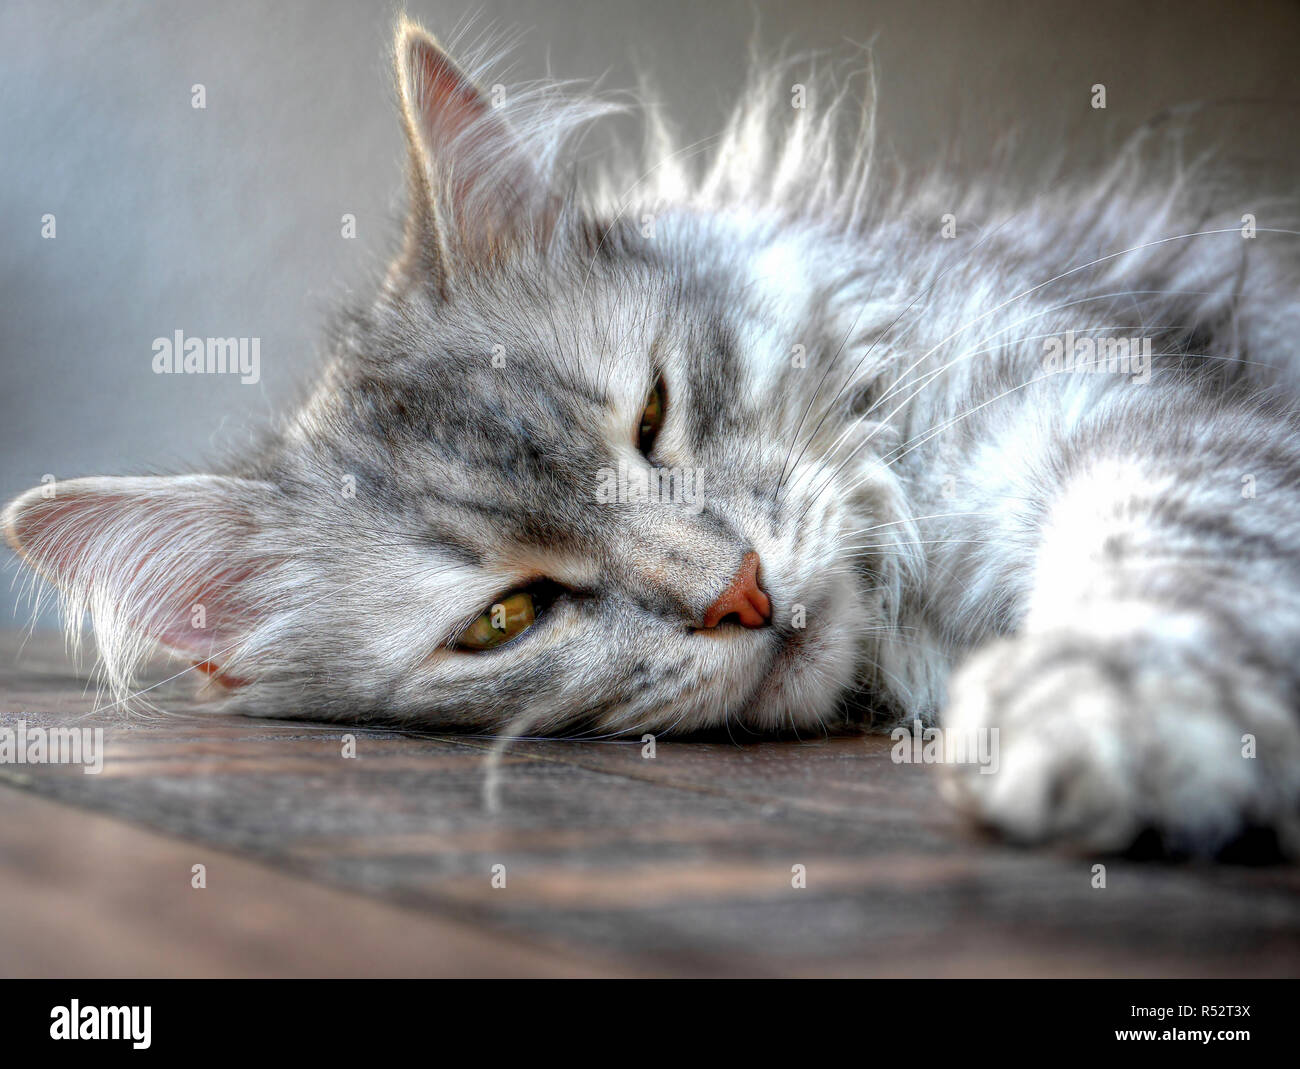 Portrait of a siberian cat sleeping on a table Stock Photo